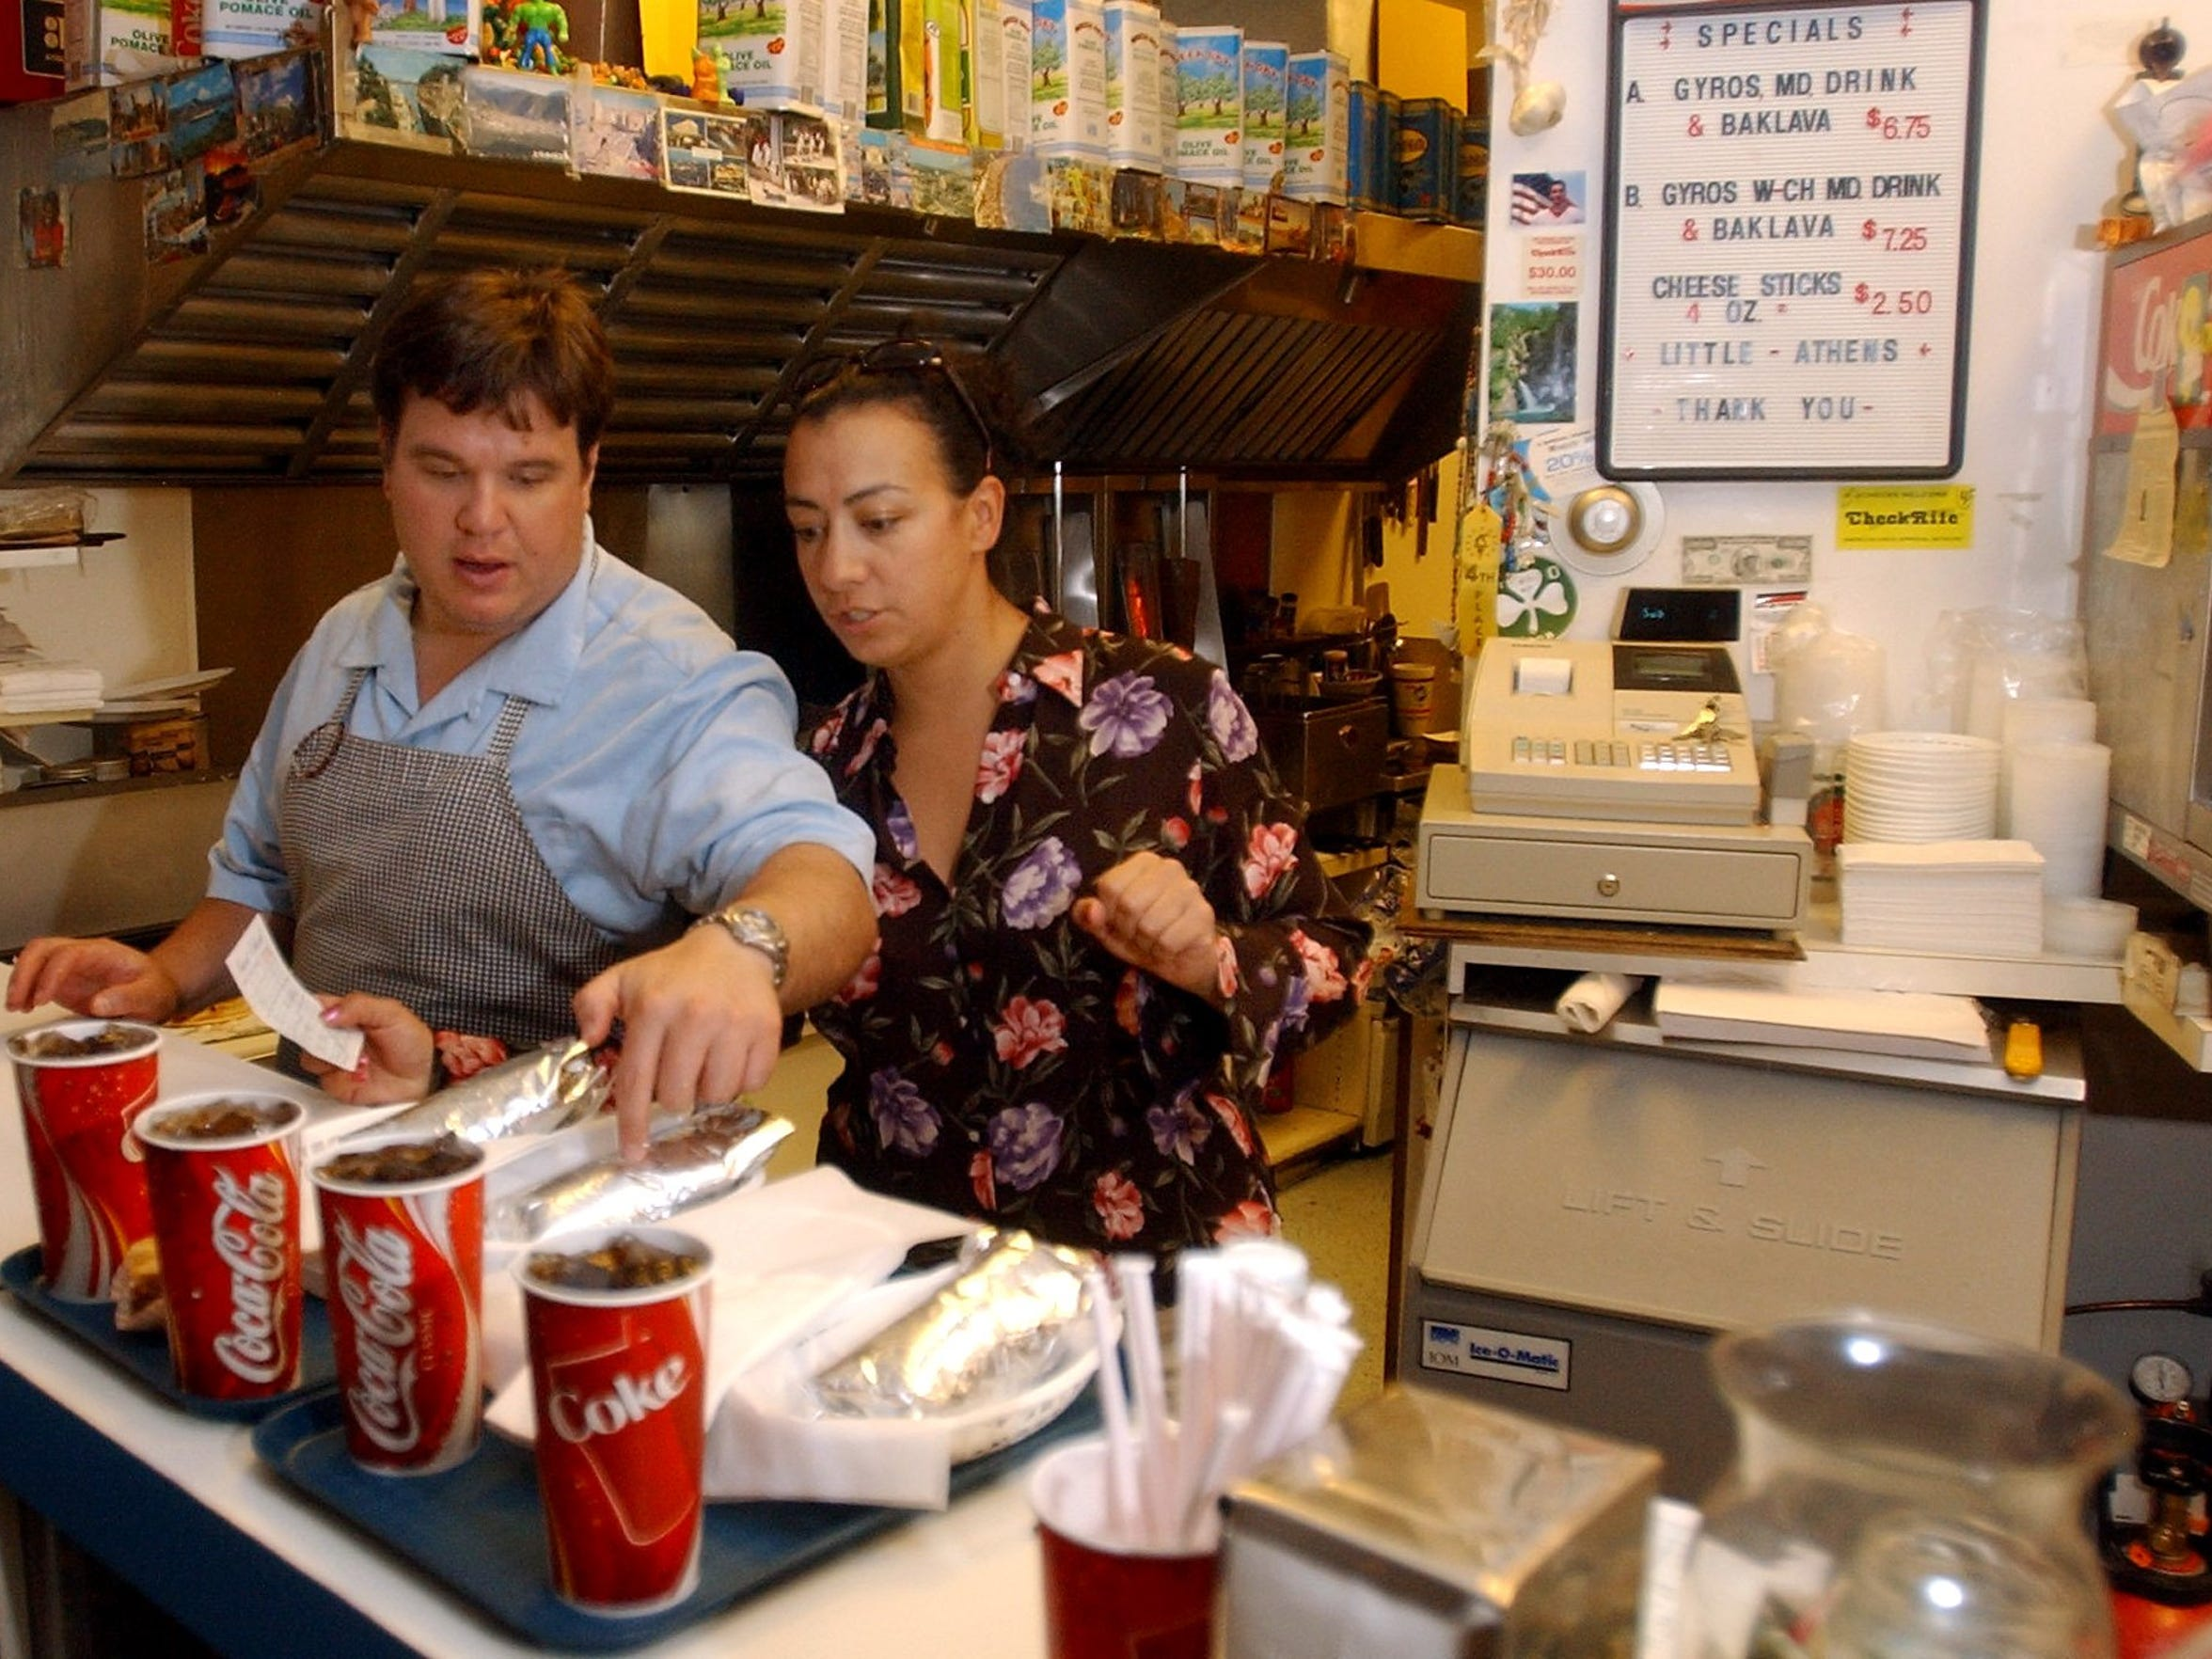 Nick and Linda Geranios put together orders at Little Athens in Holiday Mall on July 19, 2005. They and other family members operated the restaurant while their parents traveled to Greece.